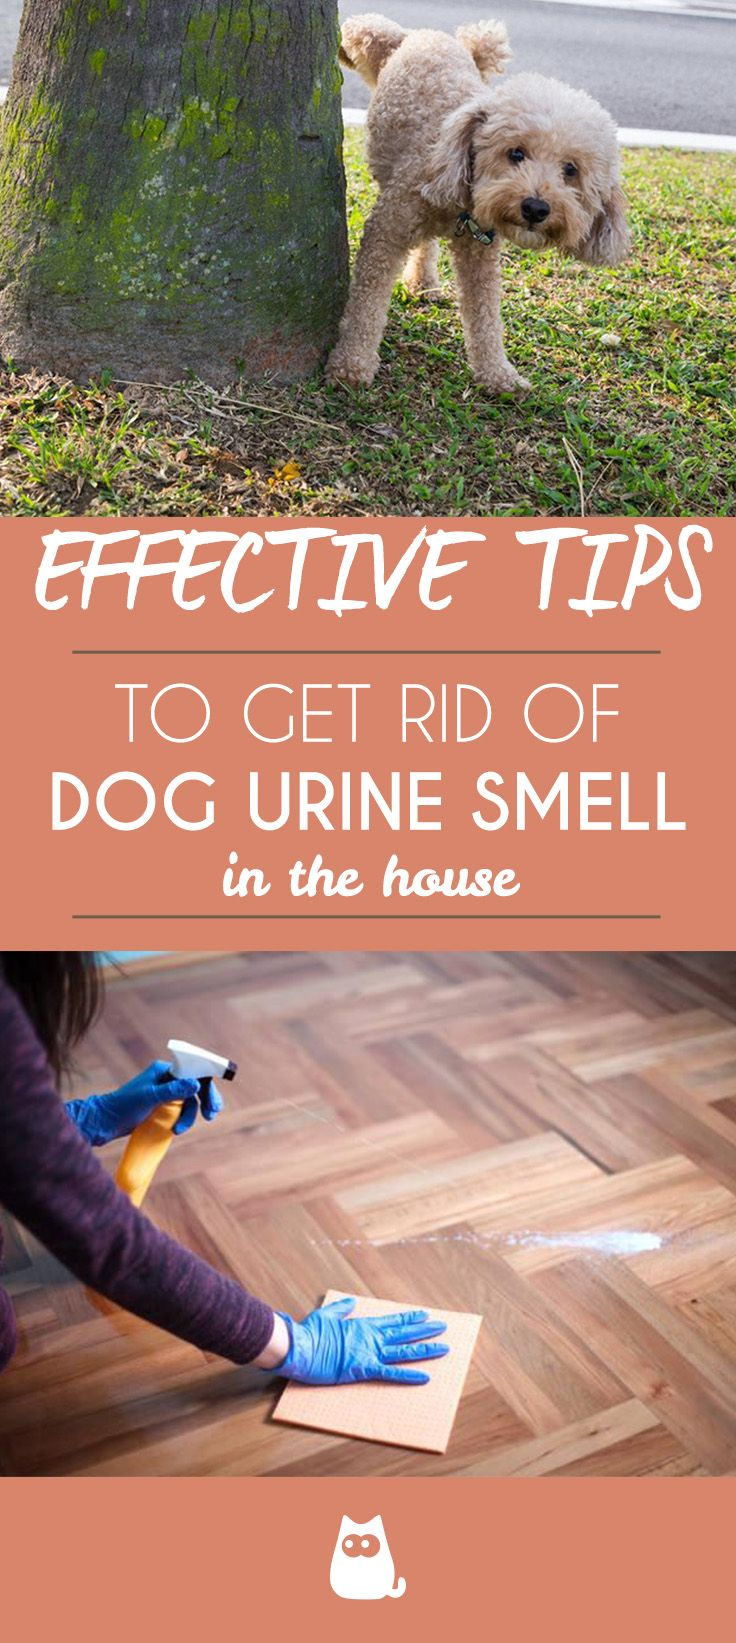 How To Get Rid Of Dog Urine Smell Dog Urine Cat Urine Smells